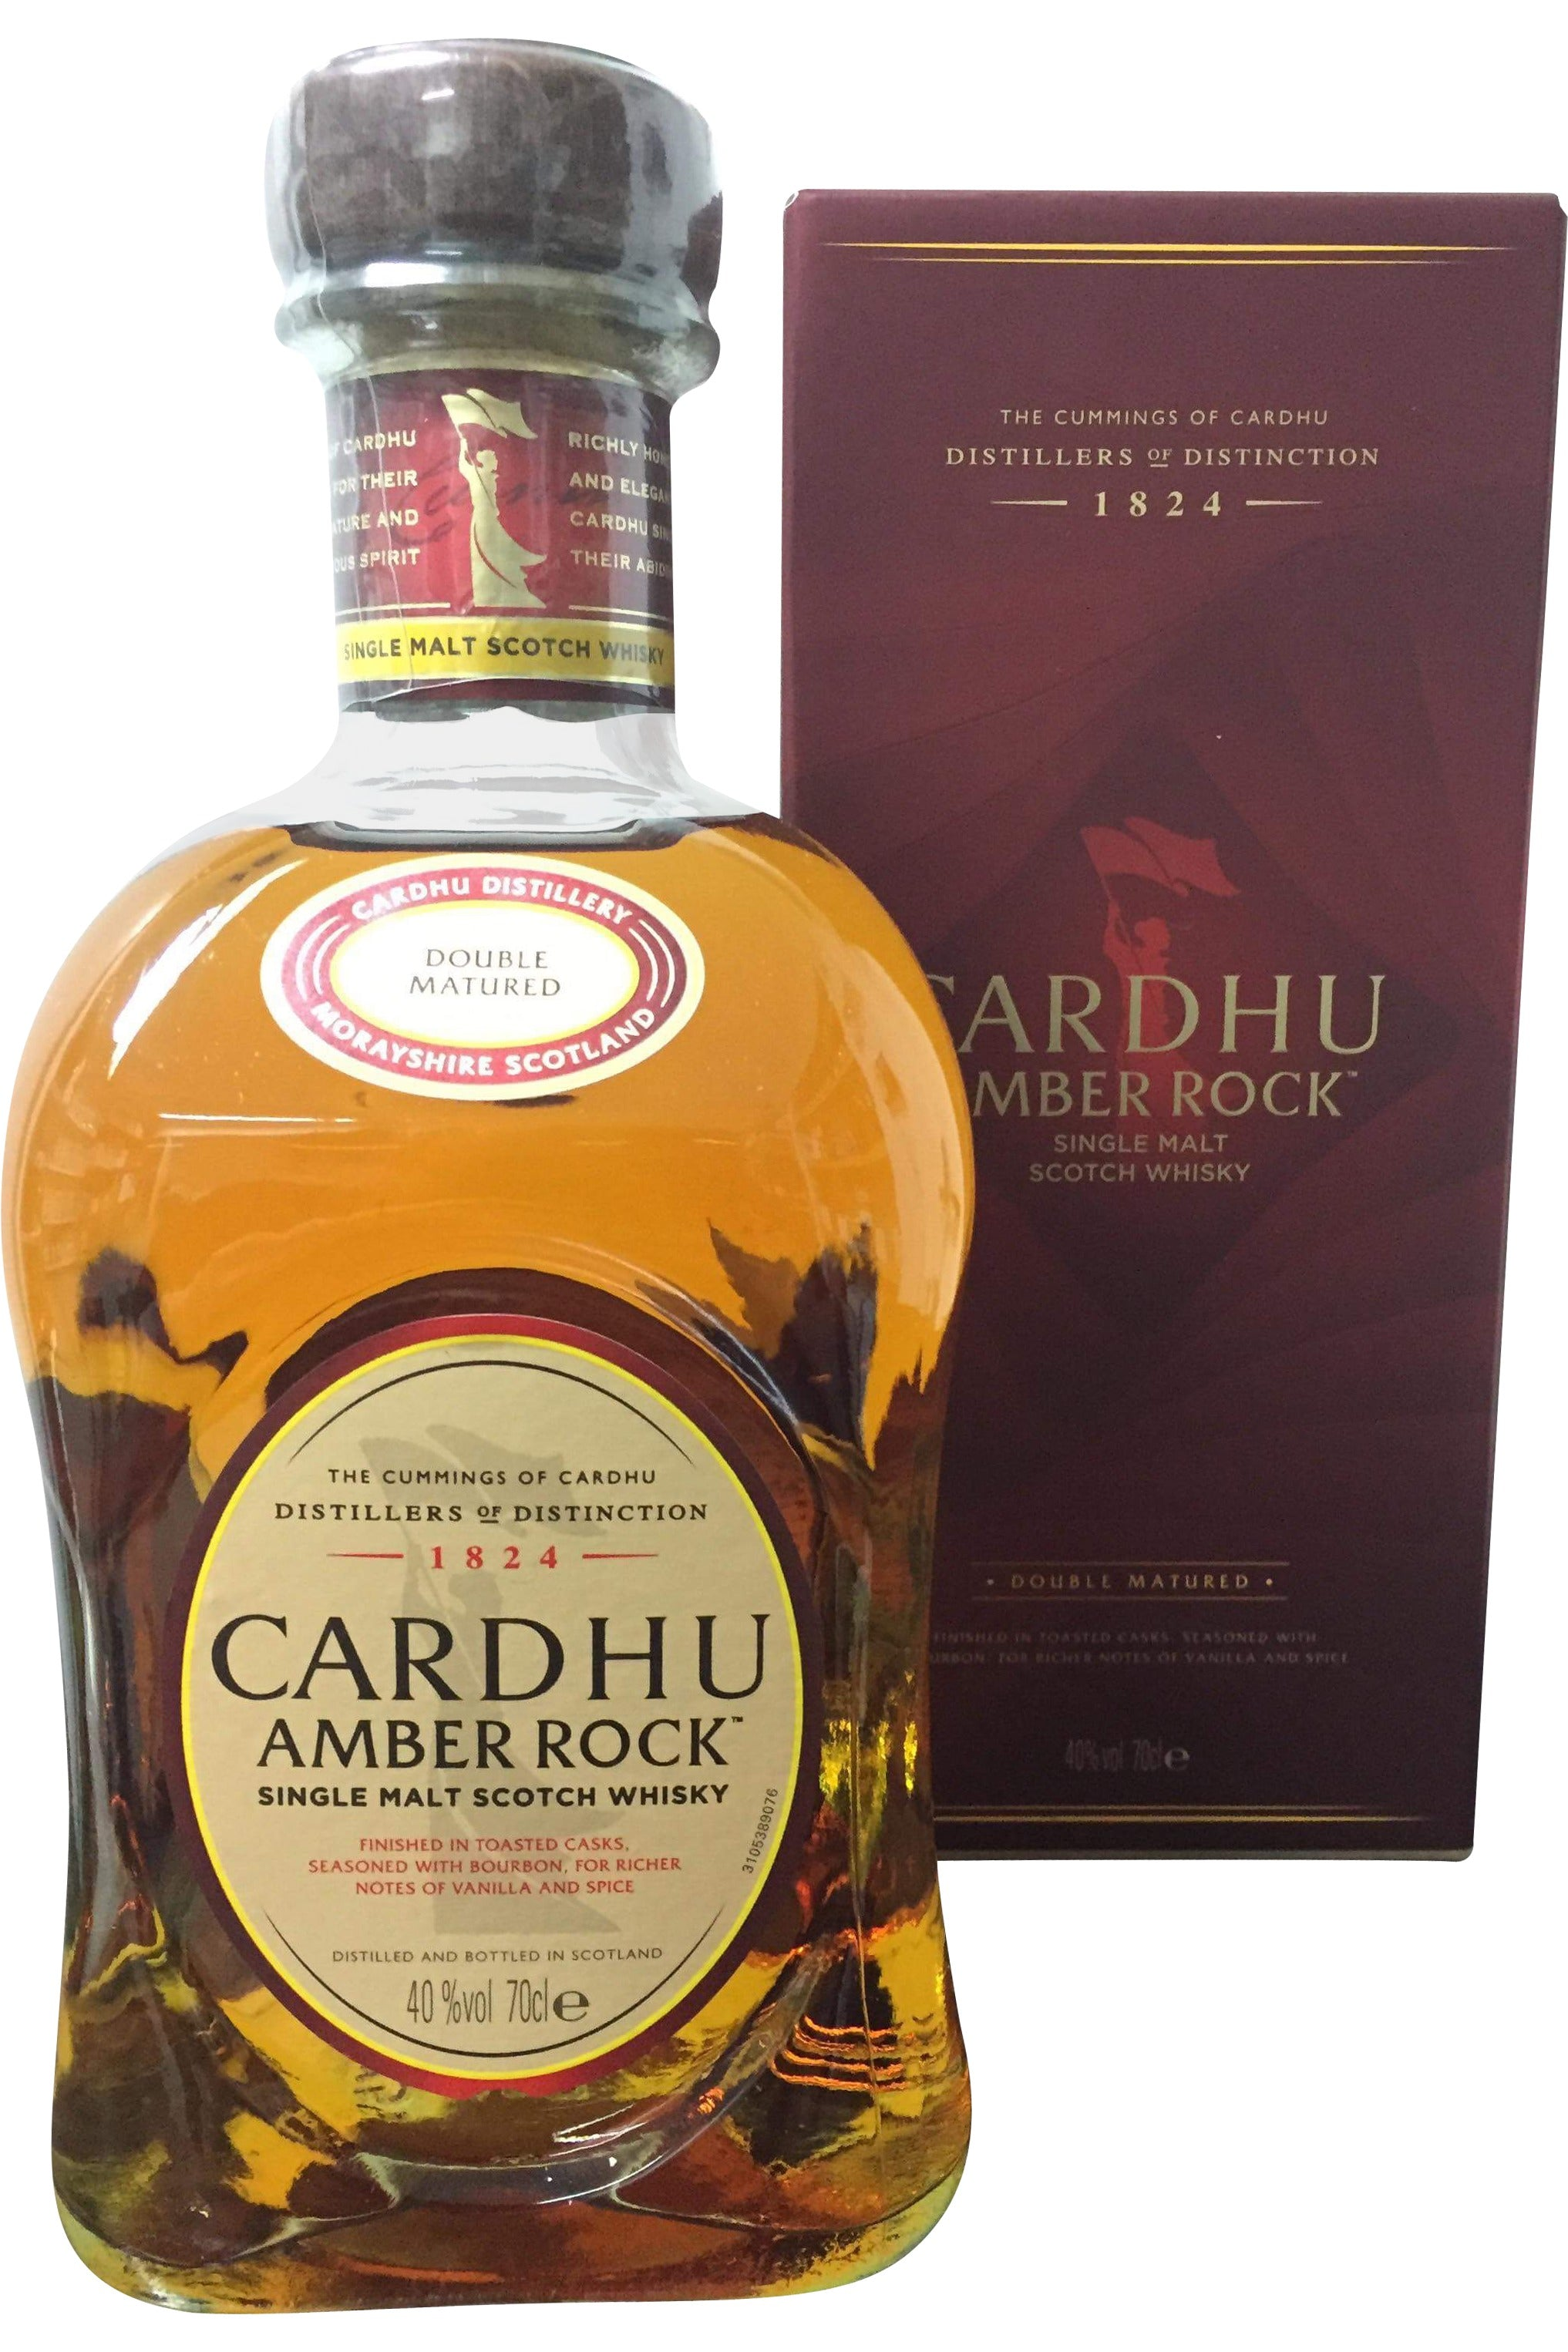 Cardhu Amber Rock - 40% 700ml